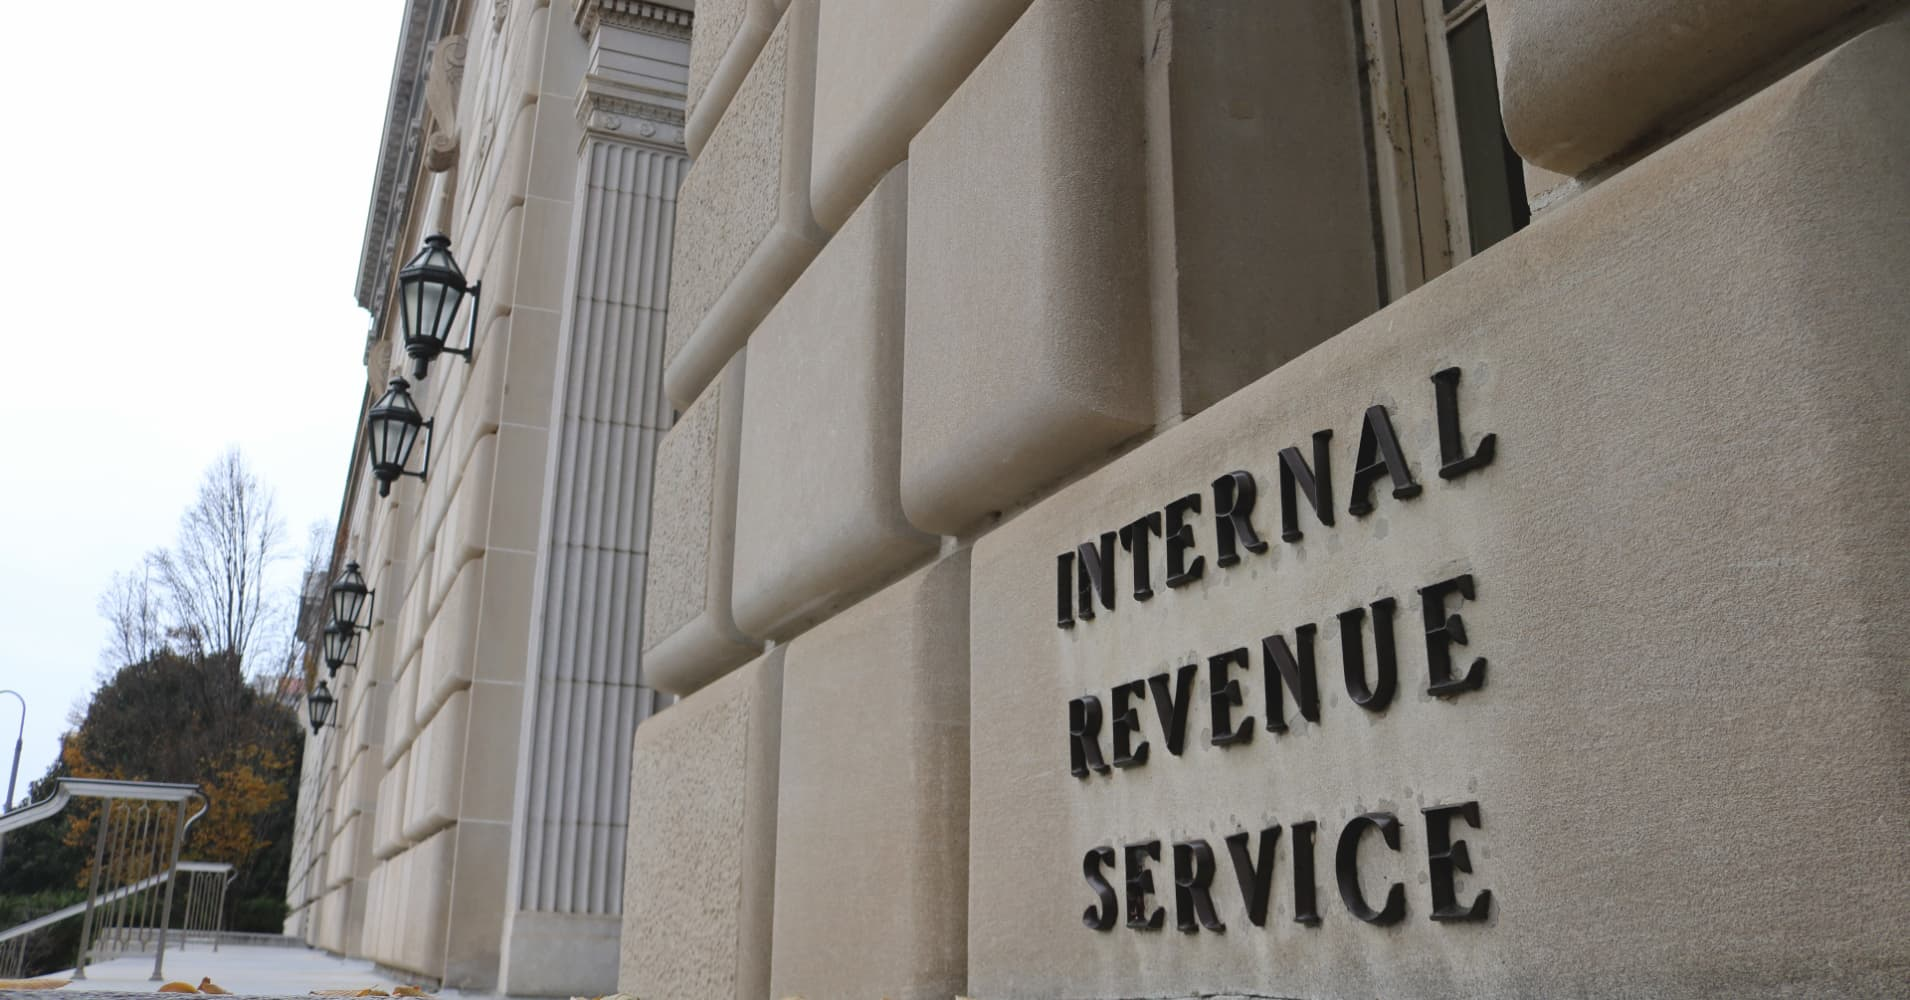 Approach tax refund advances with caution